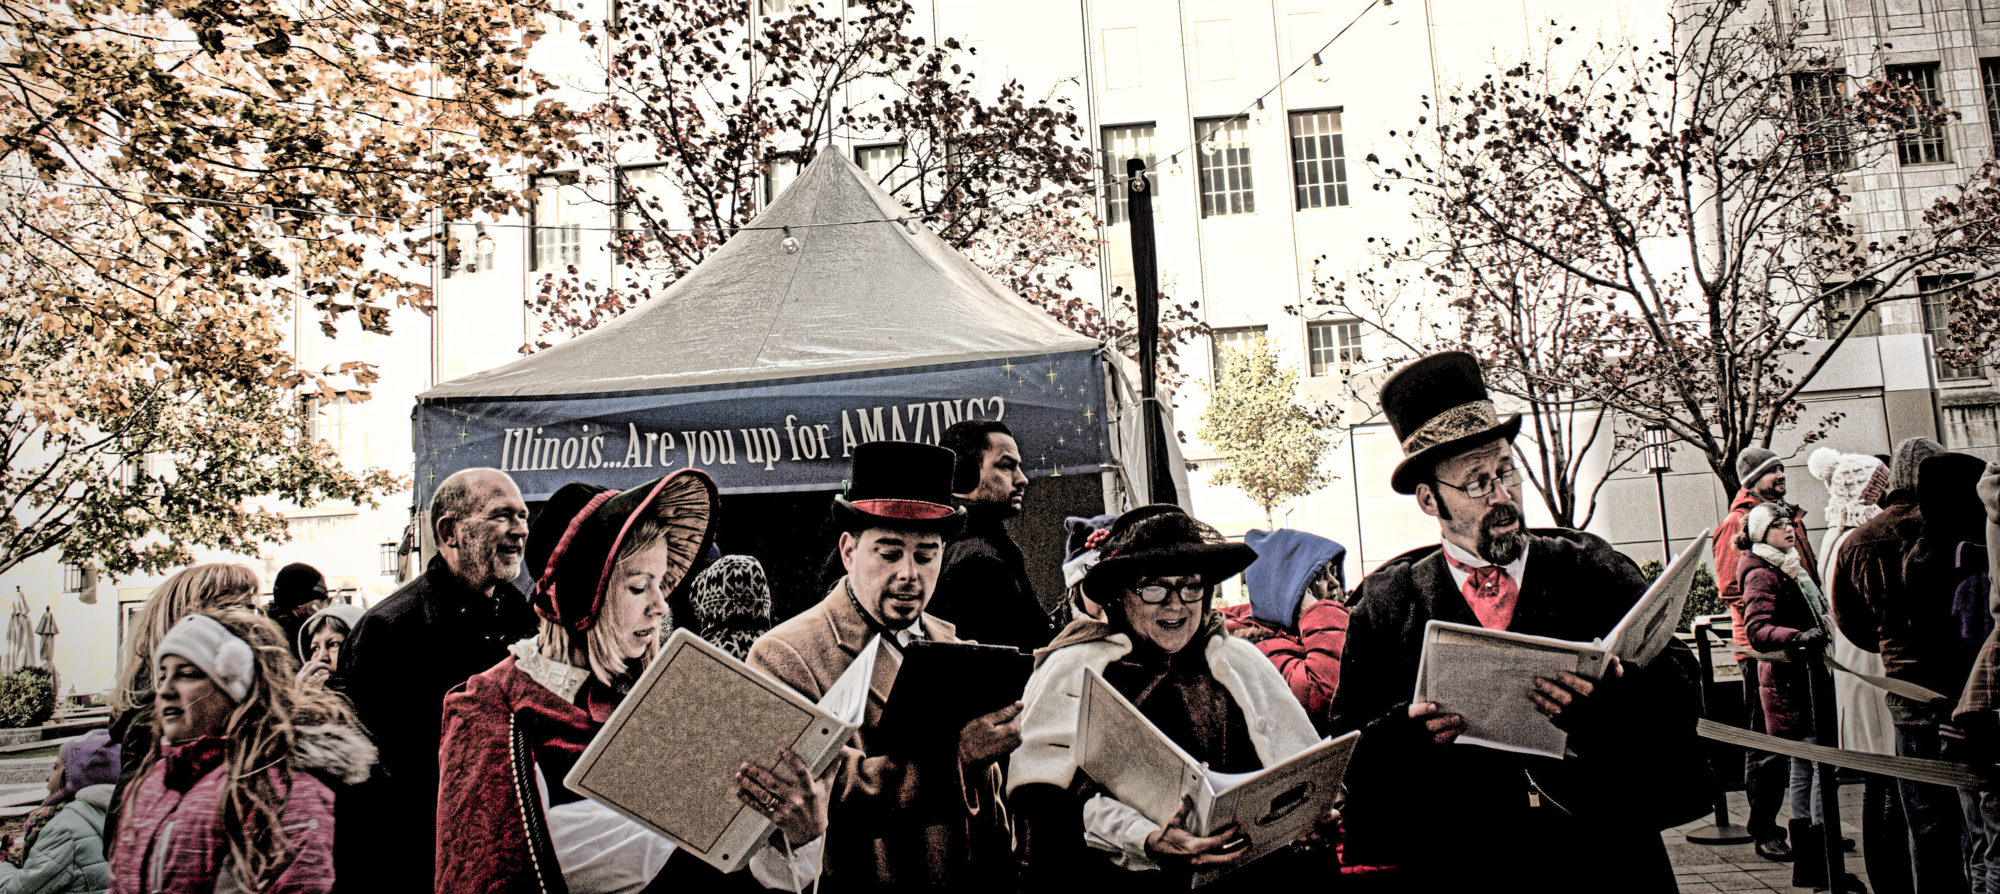 The Caroling Connection on Festival Lane